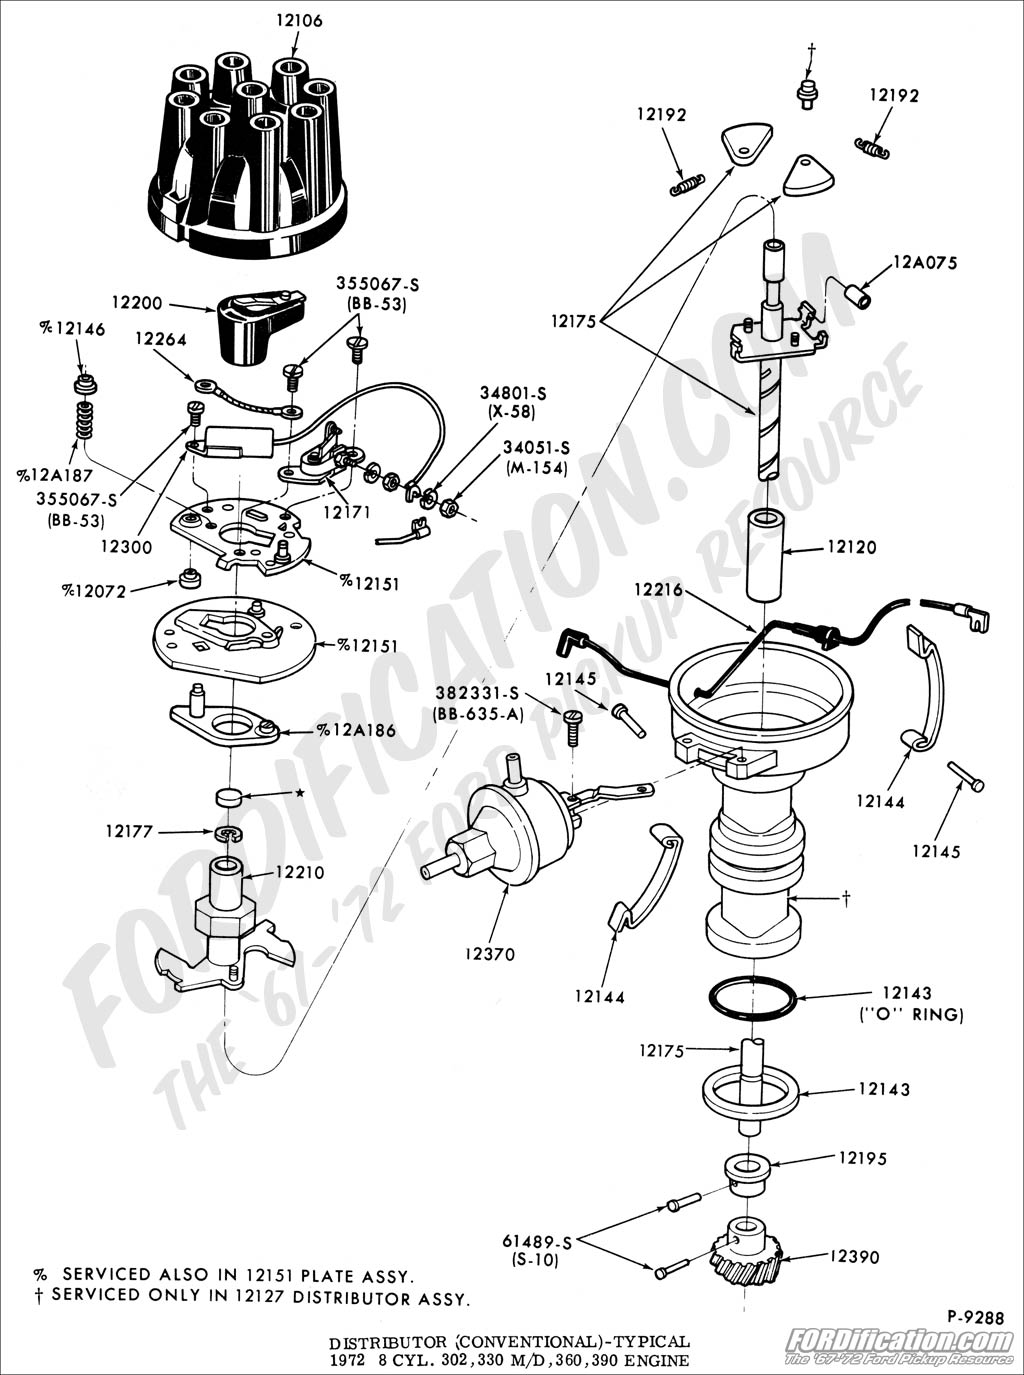 360 Ford V8 Engine Diagram Wallpaper 5 besides 1964 Mustang Wiring Diagrams furthermore Trend 1964 Ford Fairlane Wiring Diagram 74 For Ansul System Wiring Diagram With 1964 Ford Fairlane Wiring Diagram furthermore 1968 Amc Javelin Wiring Diagram likewise 1969 Mustang Wiring Diagram Schematic. on 68 mustang wiring schematic